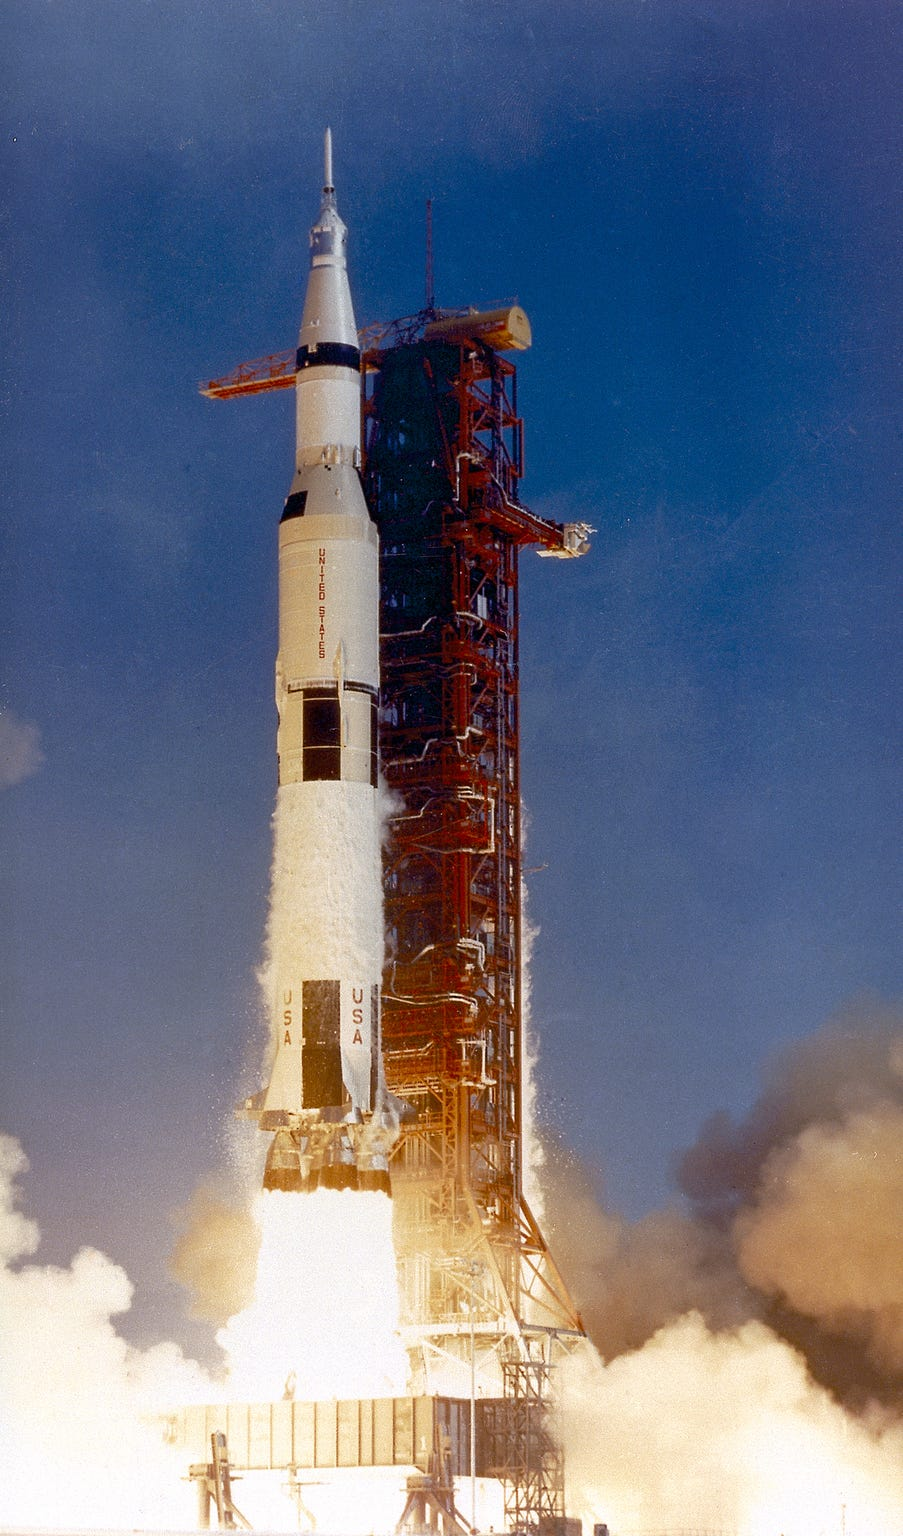 This photograph shows the Saturn V launch vehicle (SA-506) for the Apollo 11 mission liftoff at 8:32 am CDT, July 16, 1969, from launch complex 39A at the Kennedy Space Center. Apollo 11 was the first manned lunar landing mission with a crew of three astronauts: Mission commander Neil A. Armstrong, Command Module pilot Michael Collins, and Lunar Module pilot Edwin E. Aldrin, Jr. It placed the first humans on the surface of the moon and returned them back to Earth. Astronaut Armstrong became the first man on the lunar surface, and astronaut Aldrin became the second. Astronaut Collins piloted the Command Module in a parking orbit around the Moon.